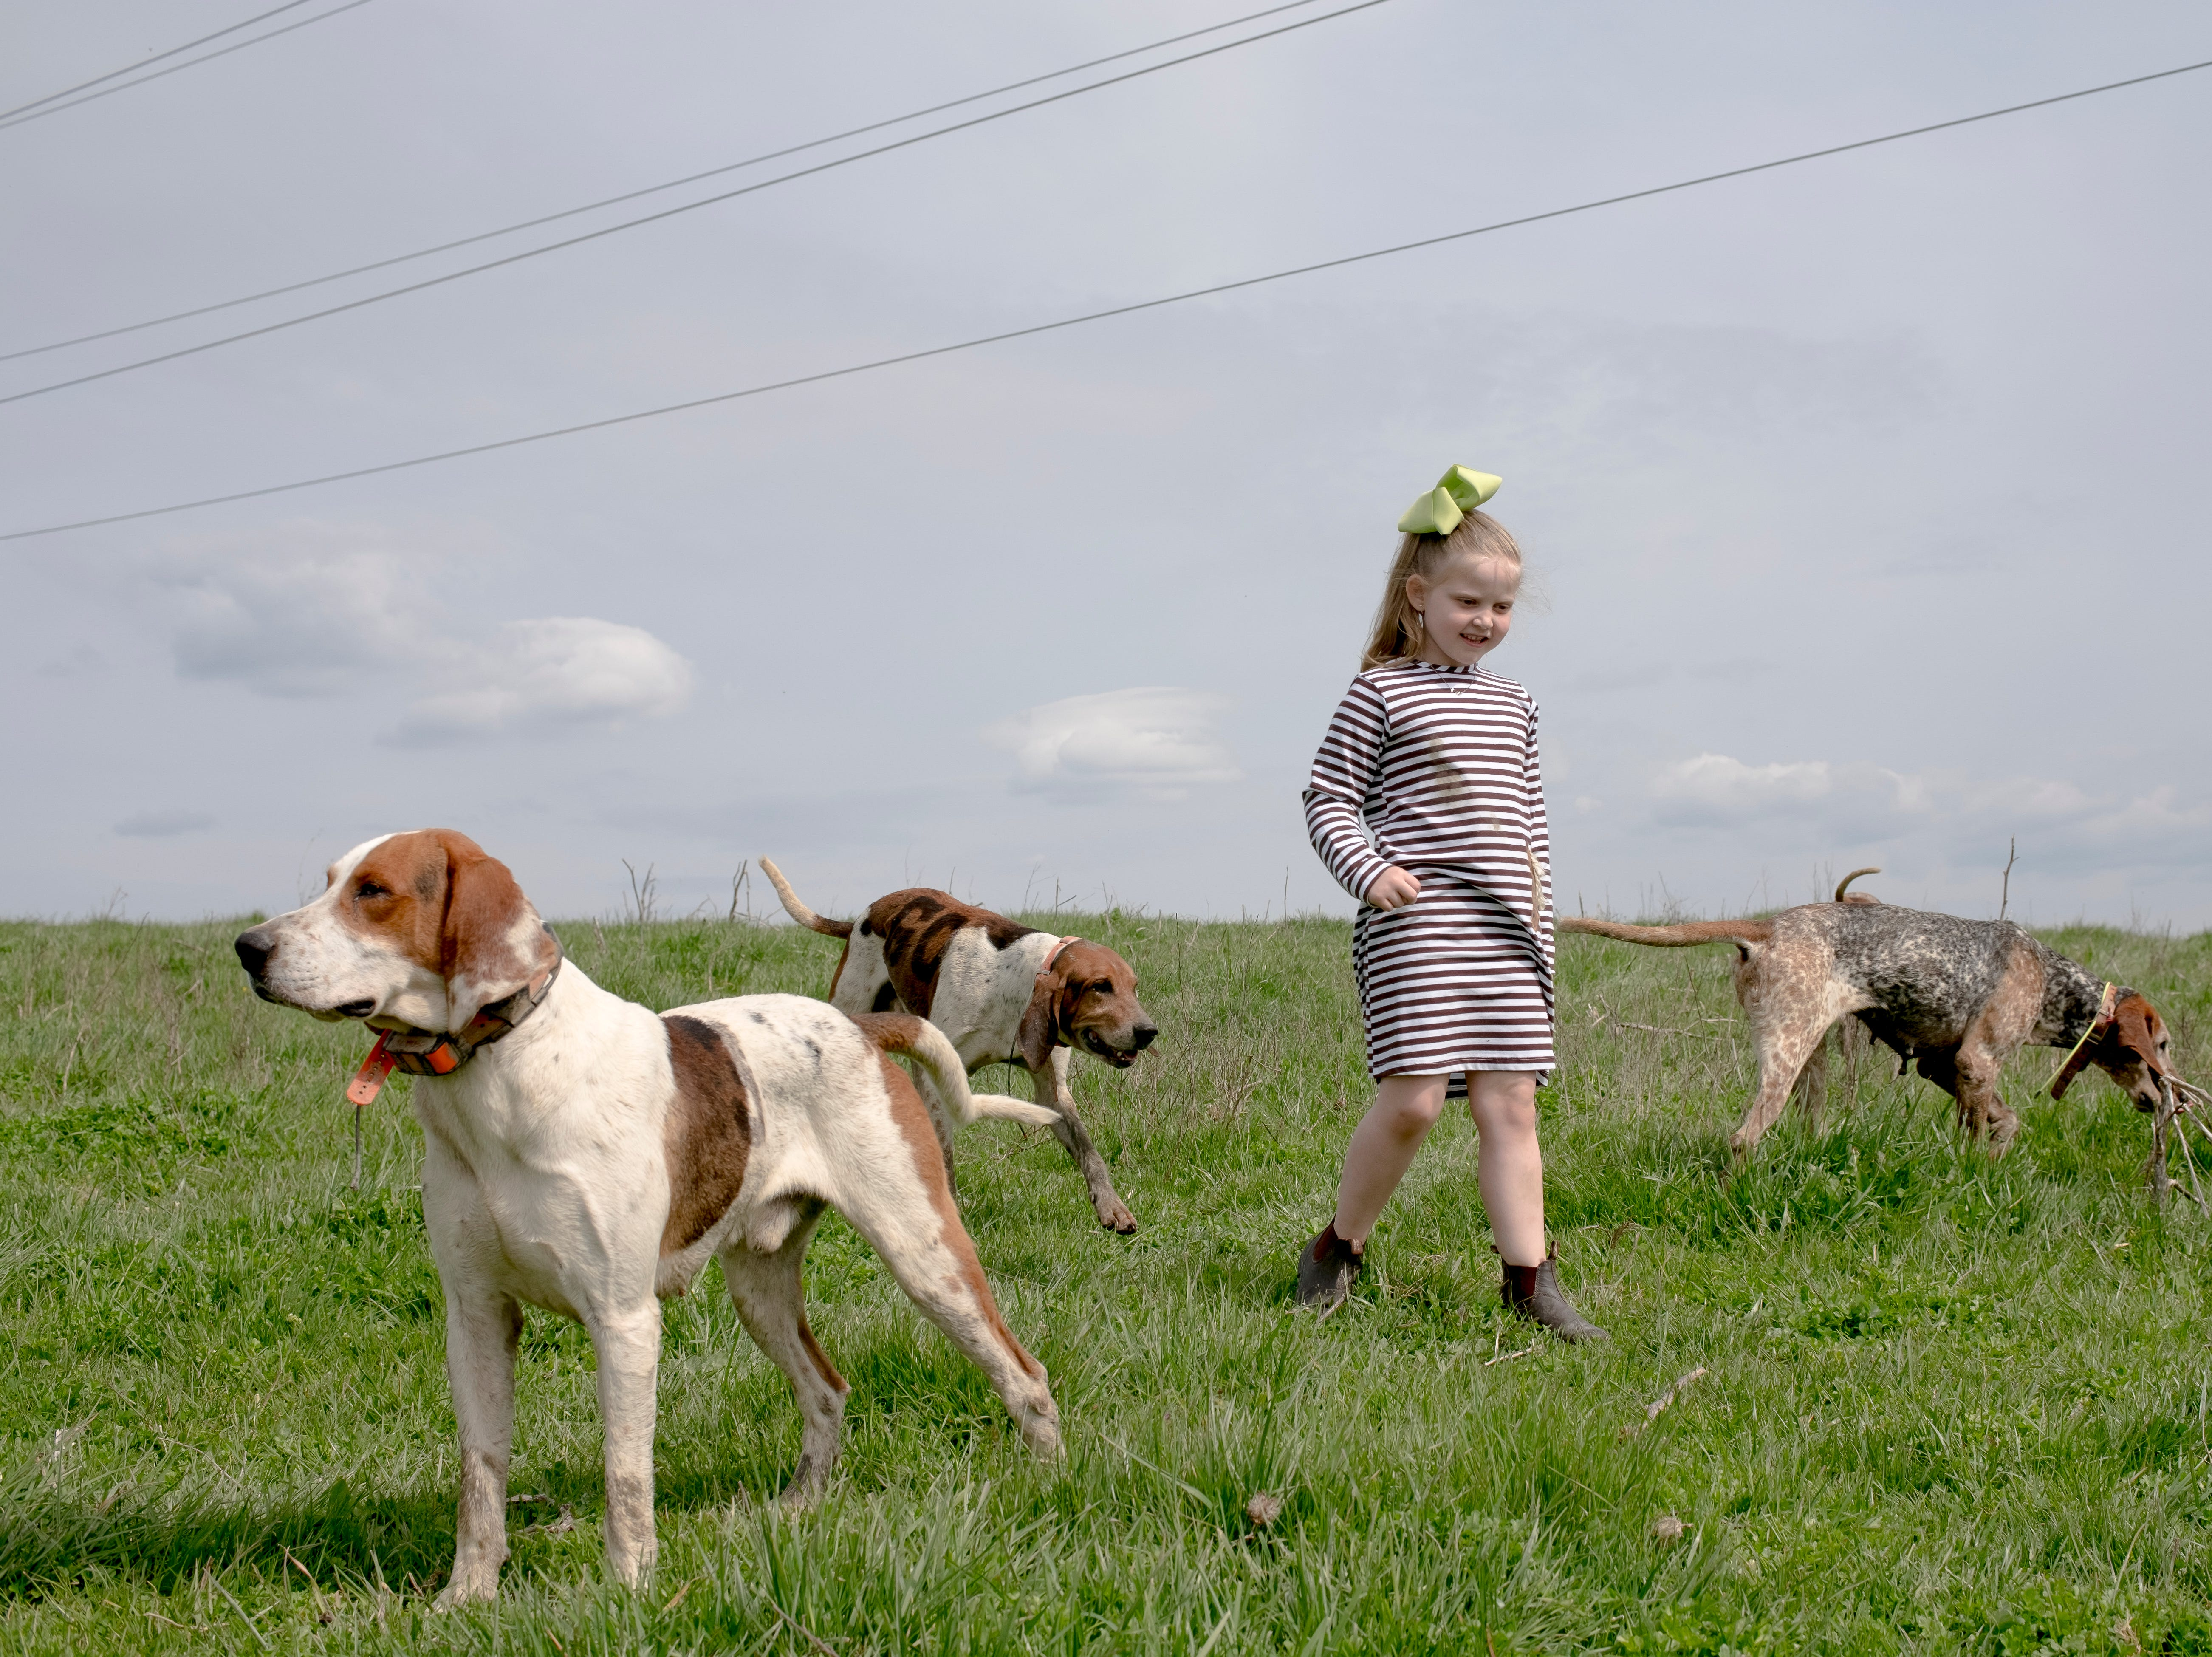 Finley Open, 6, walks among foxhounds while taking a break during a fixture at Blackberry Ridge Farm in Greeneville, Tennessee on Saturday, March 30, 2019.